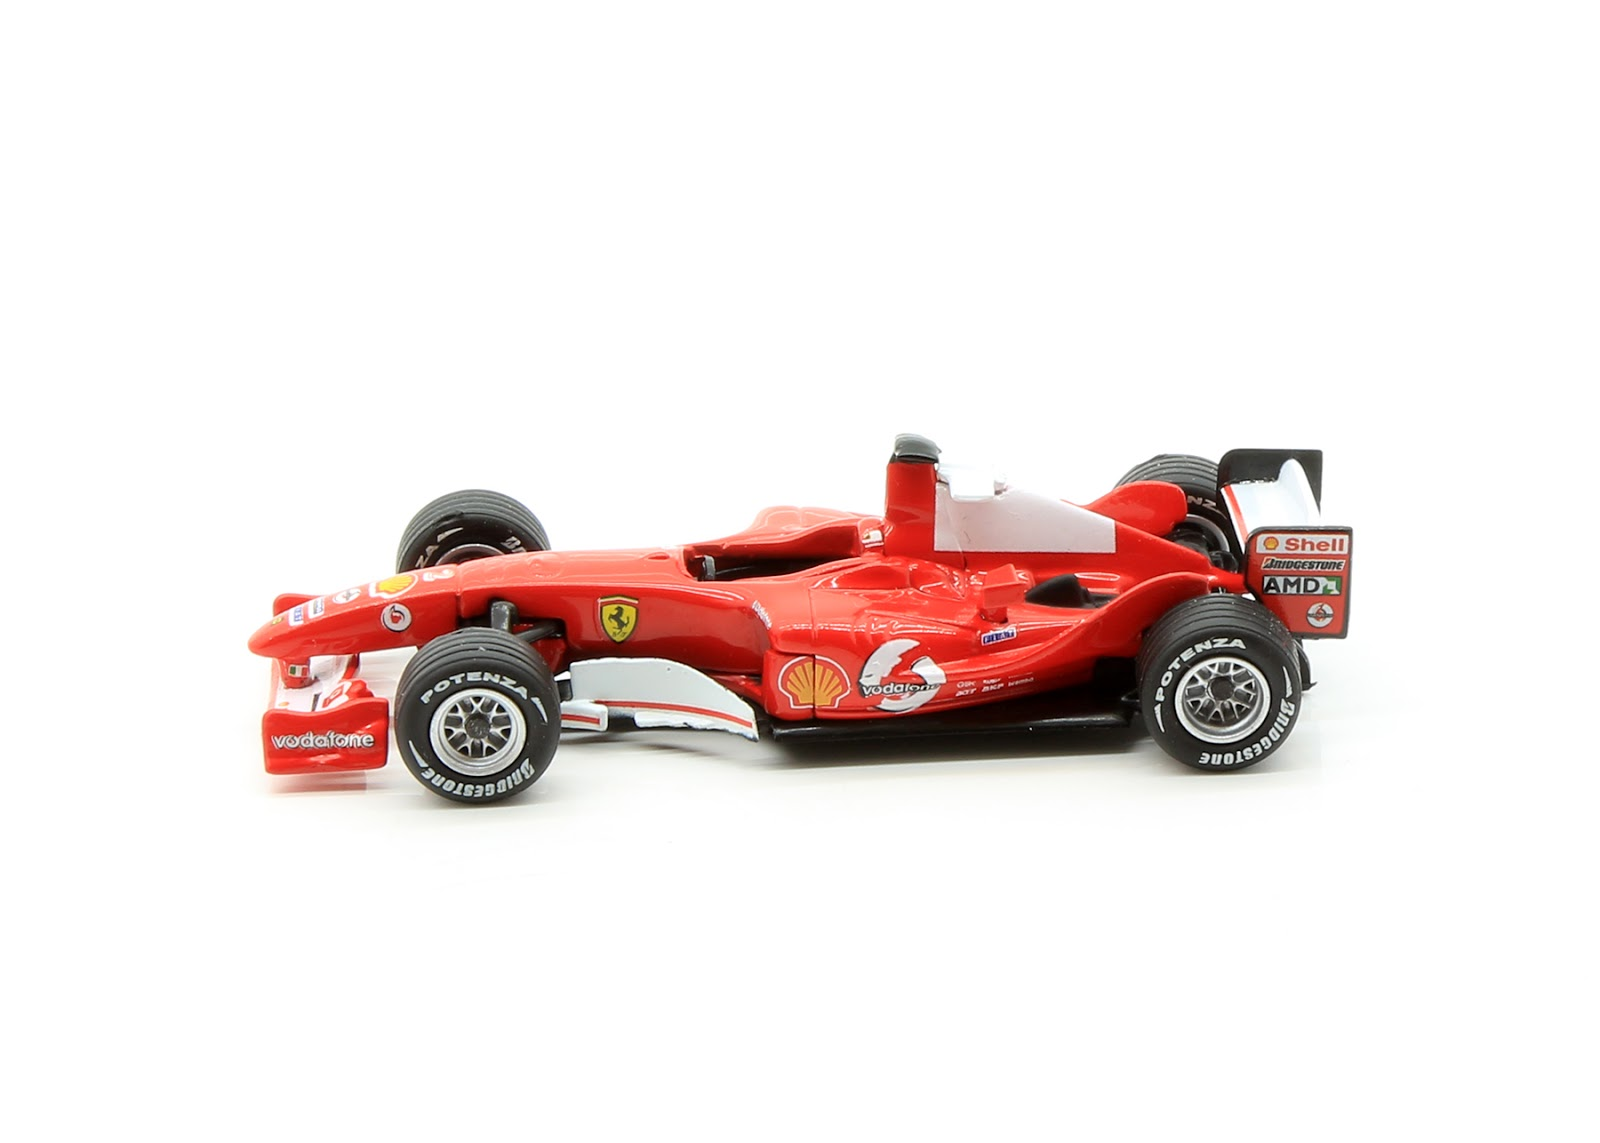 Incredible Mini Garage Ferrari F2004 2004 Kyosho 1 64